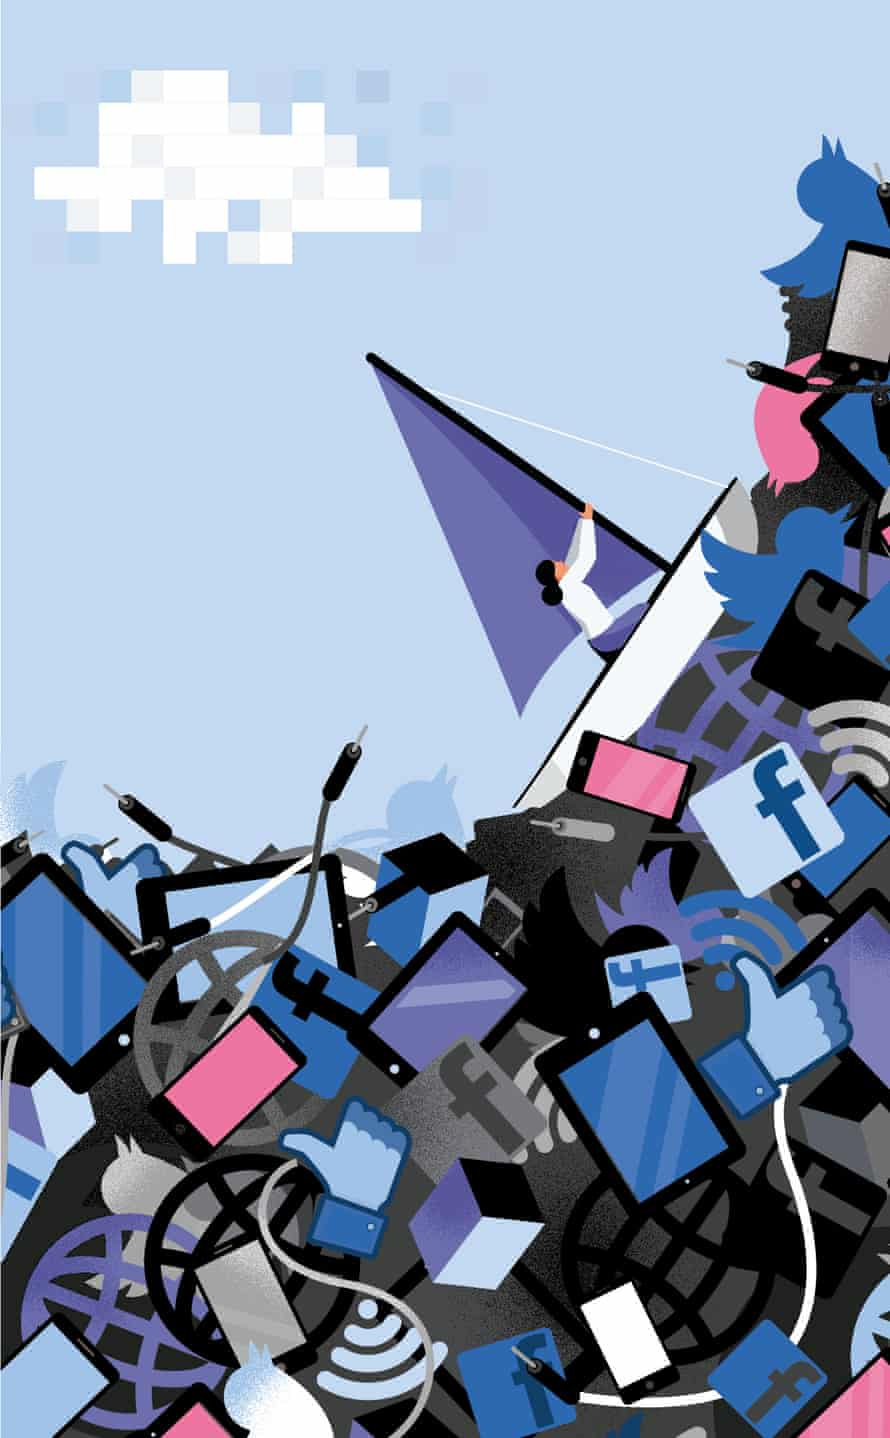 An illustration of a woman in a sailing boat riding a steep wave of digital symbols